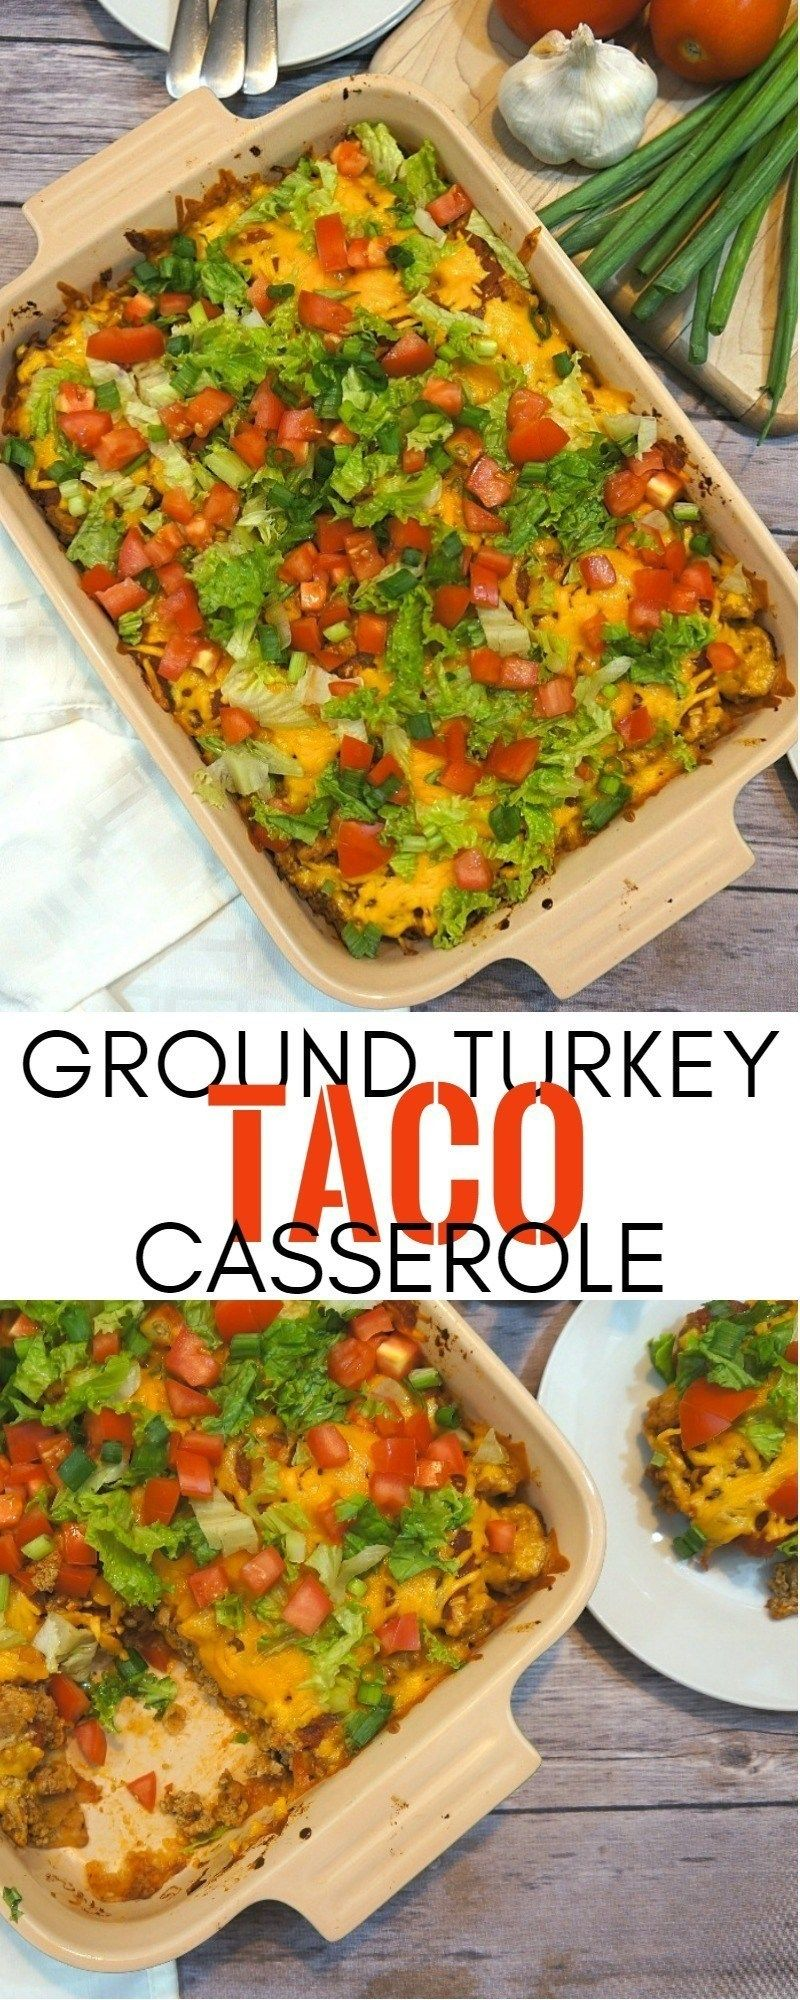 This Easy Turkey Taco Casserole Recipe Saves Our Weeknight Dinners!